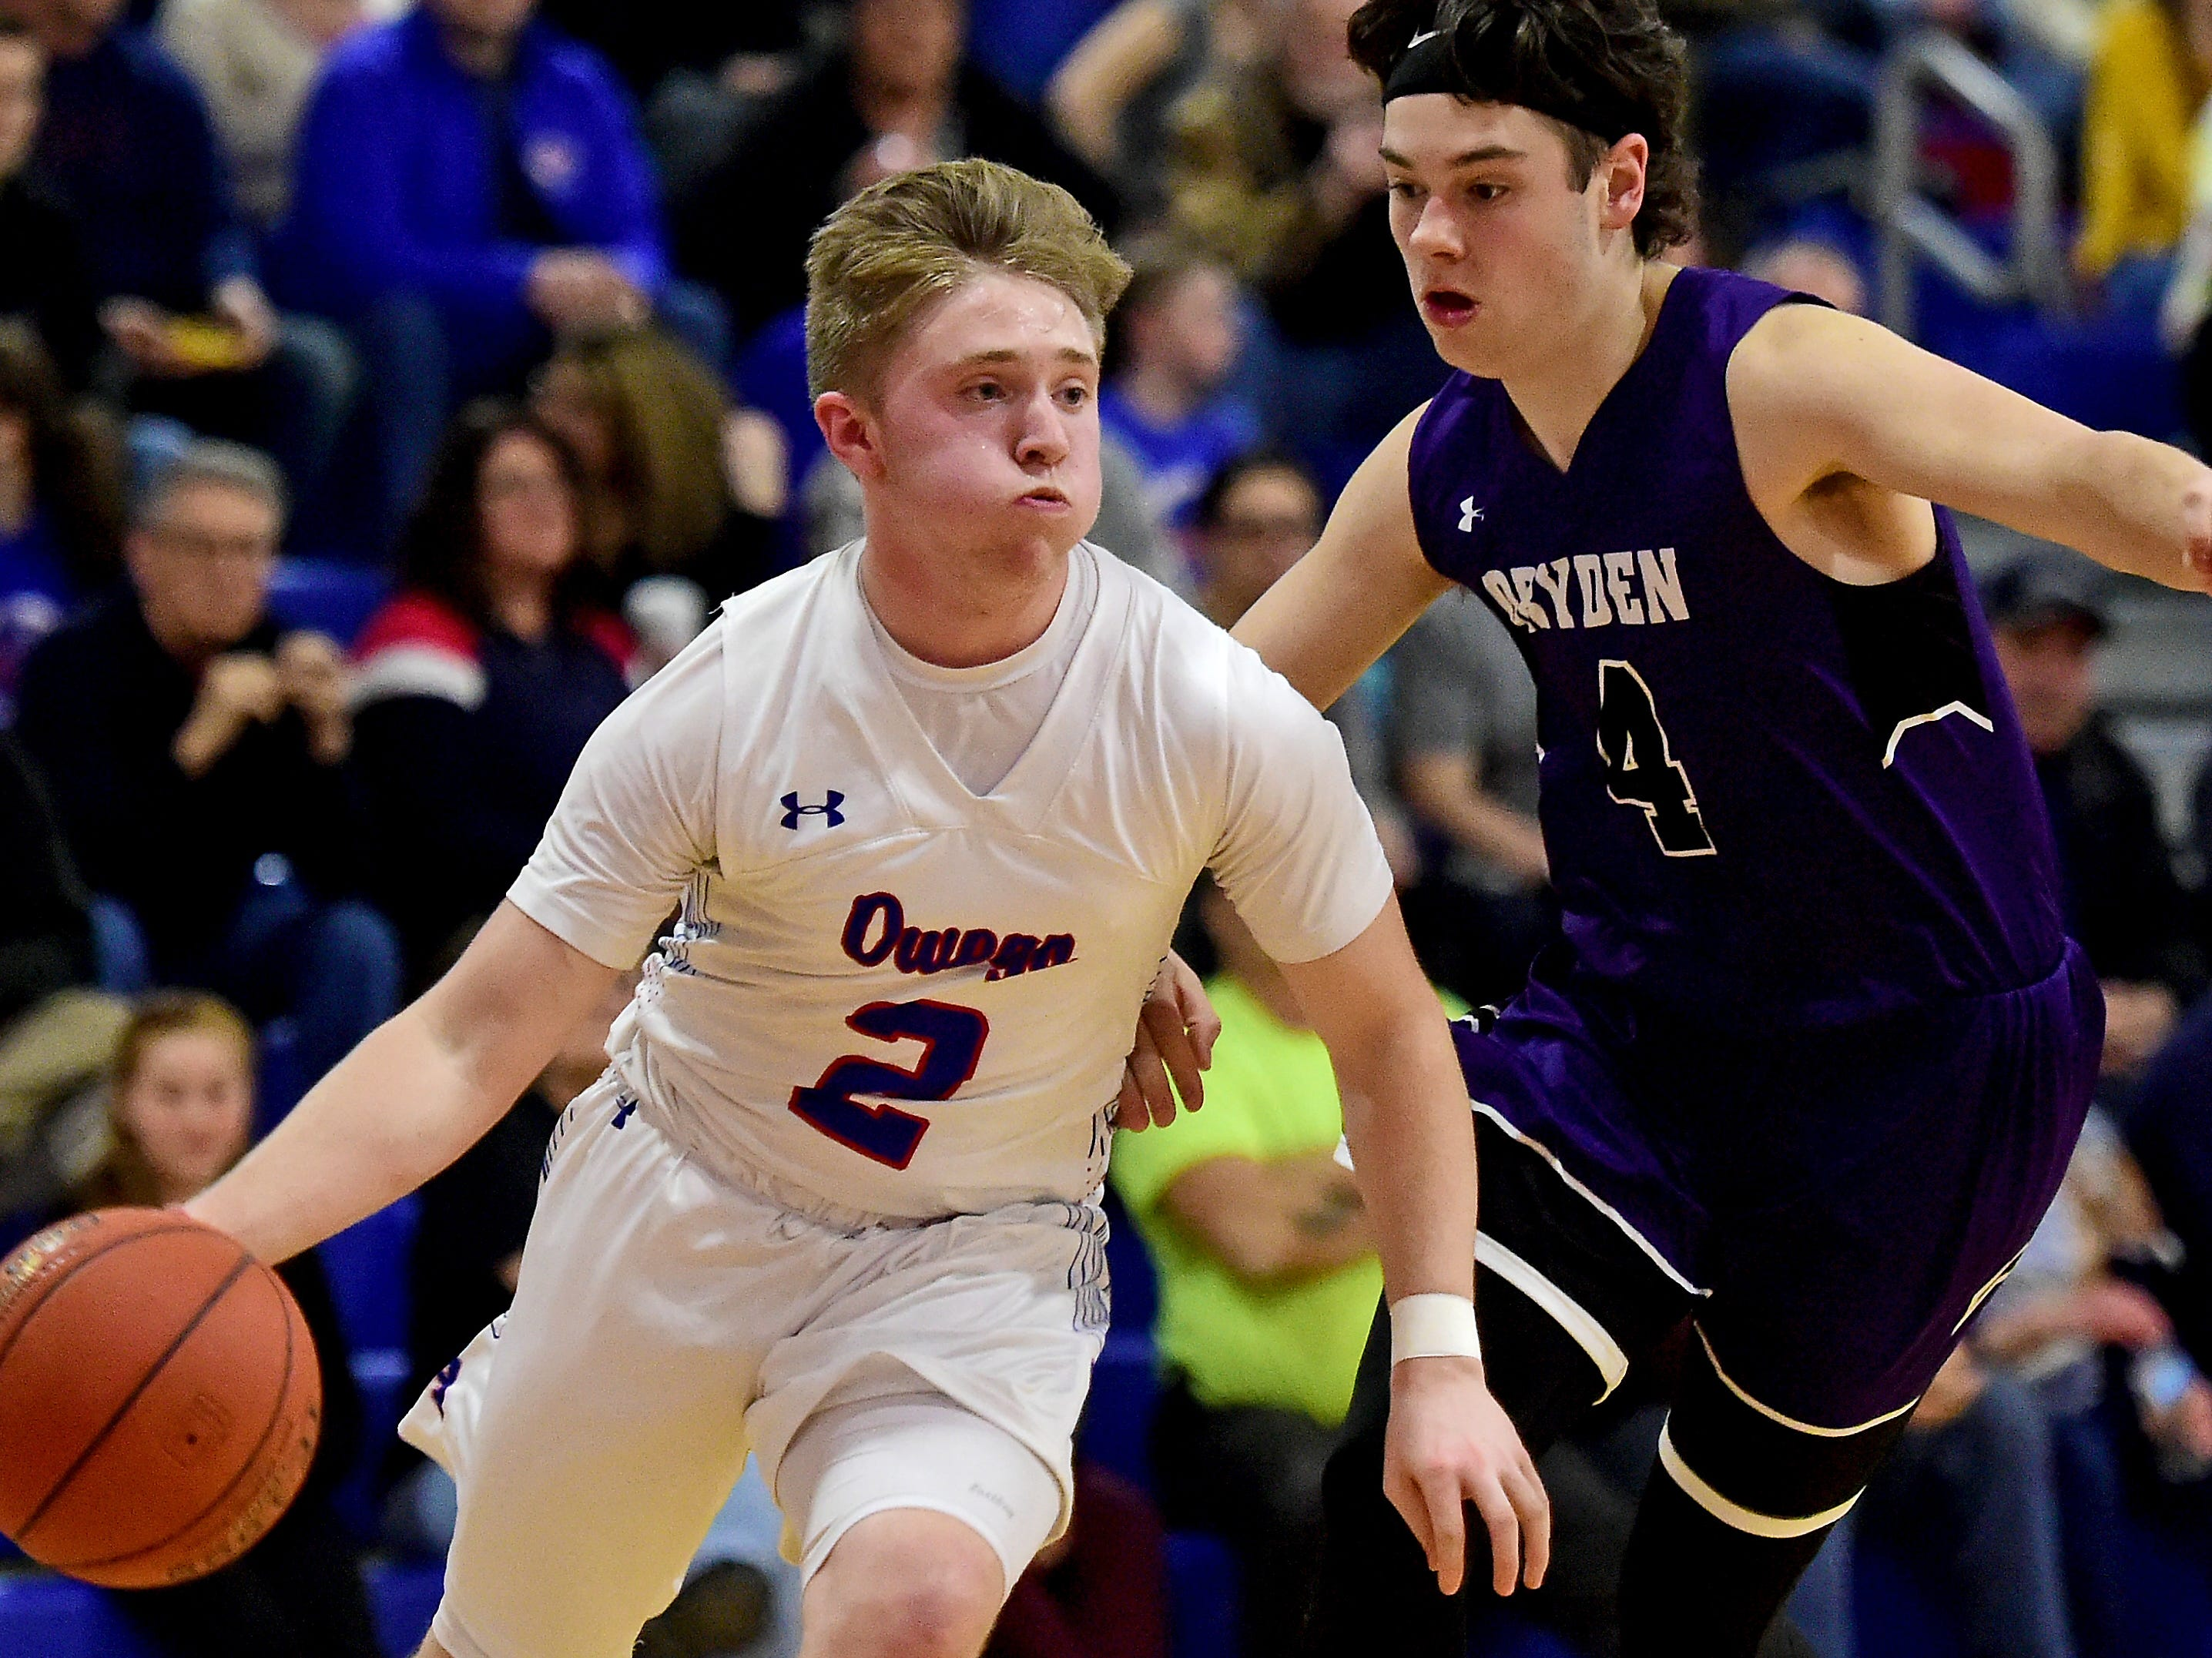 Owego's Nate Bennett (2) looks to get by Dryden during Friday's Section 4 boys basketball Class B quarterfinal, Dryden at Owego Free Academy, February 22, 2019.